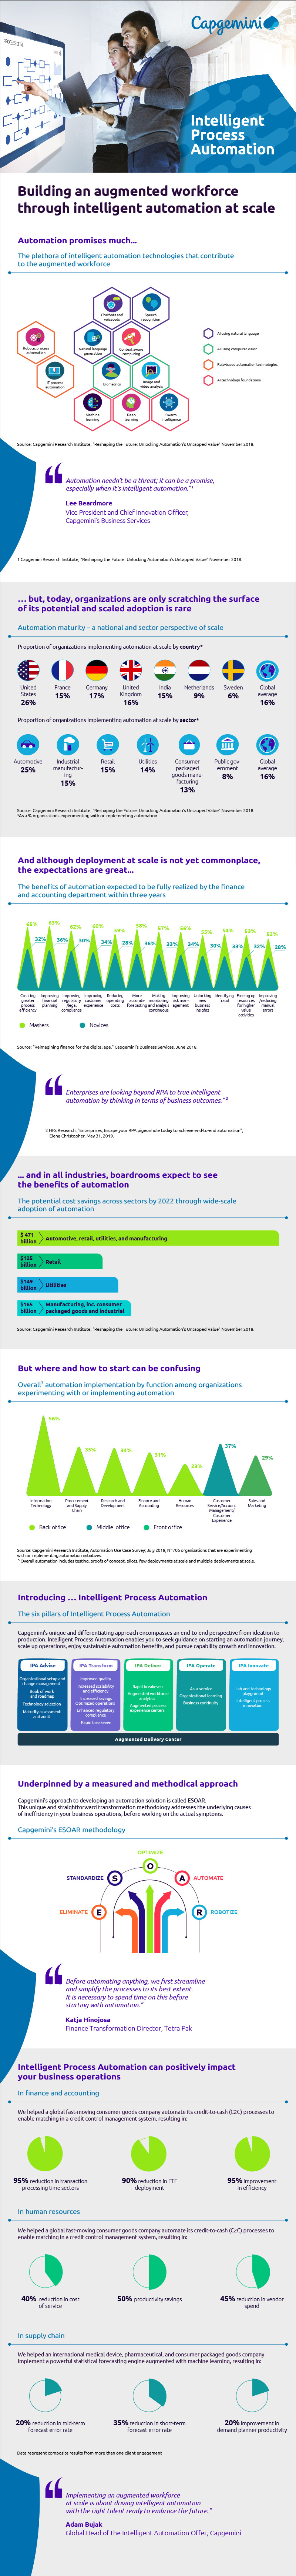 Intelligent Process Automation – Infographic